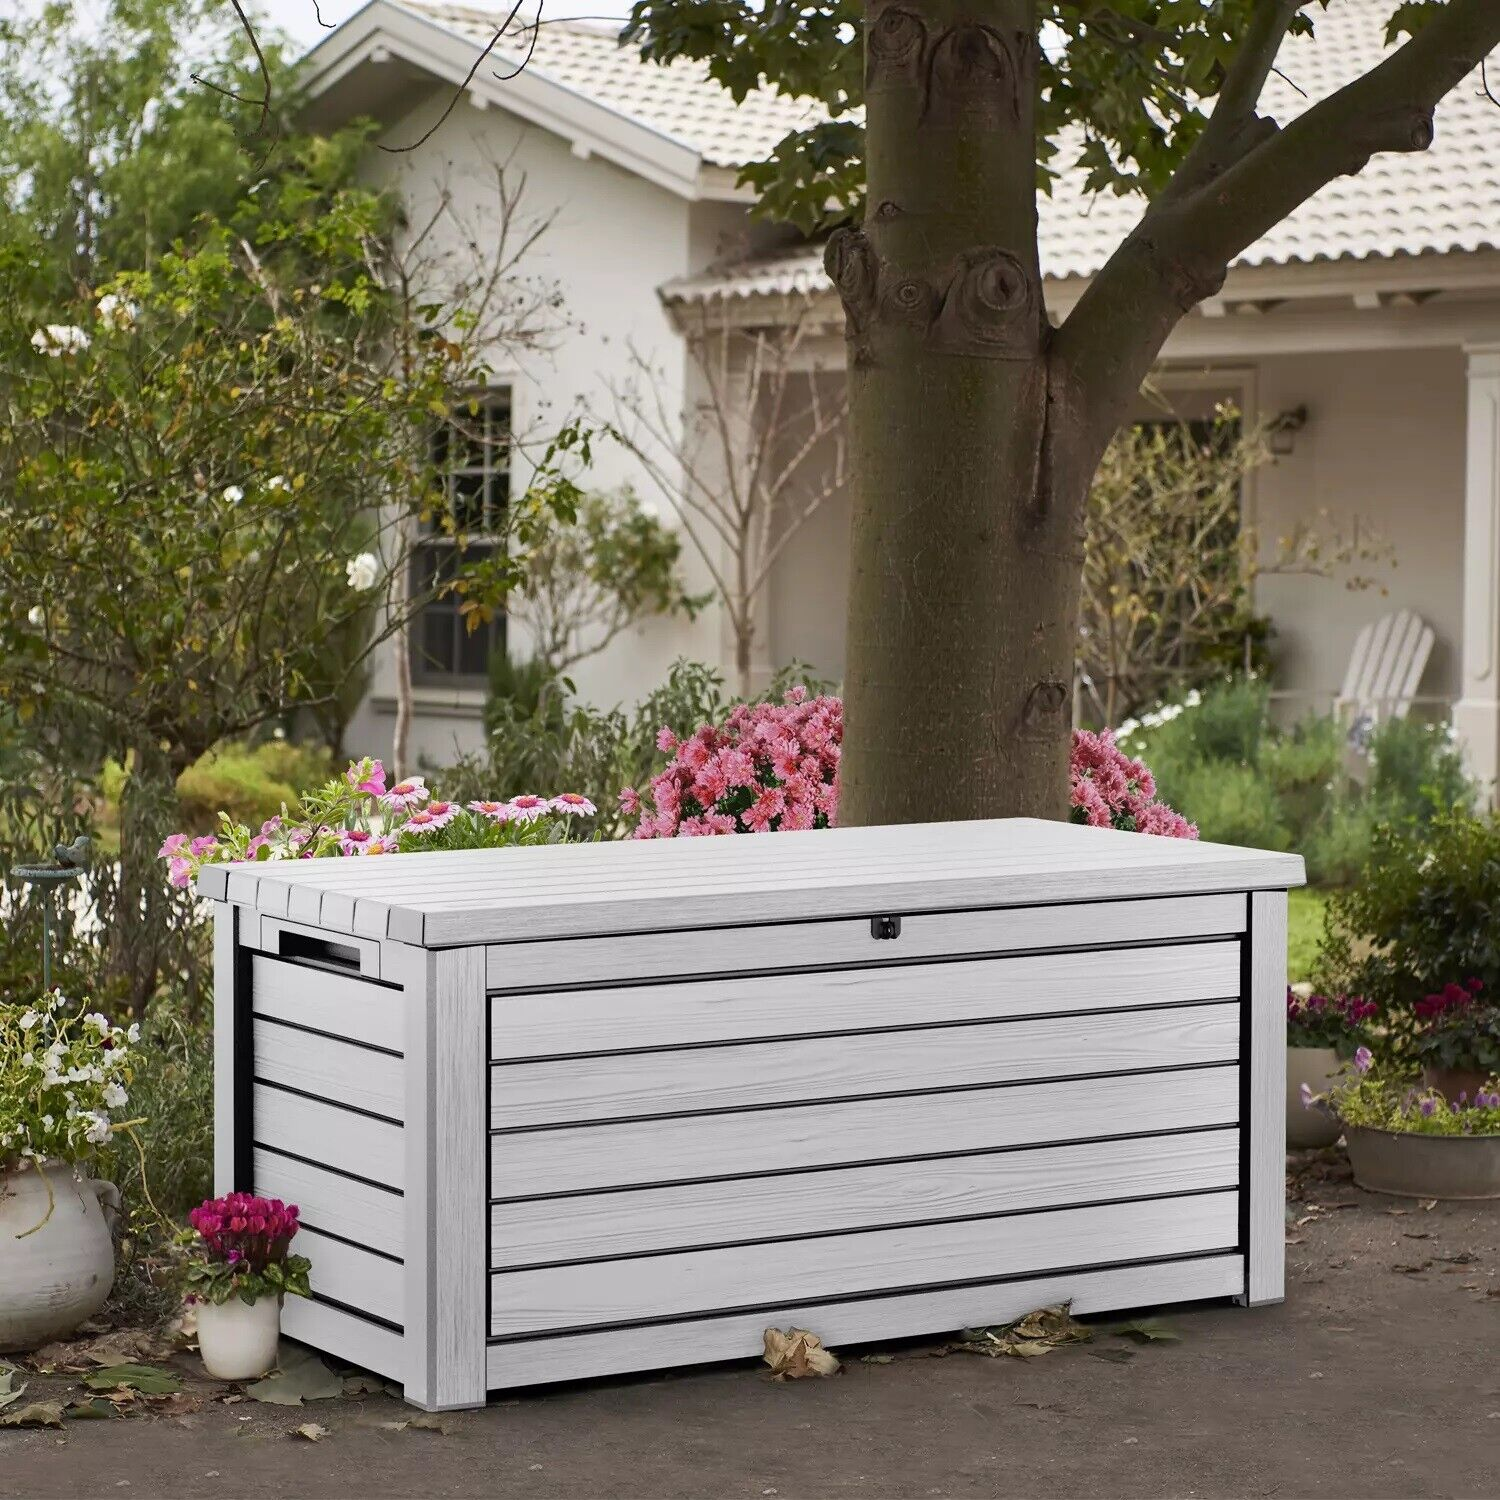 Keter 165-Gallon Weather Resistant Resin Deck Storage Contai